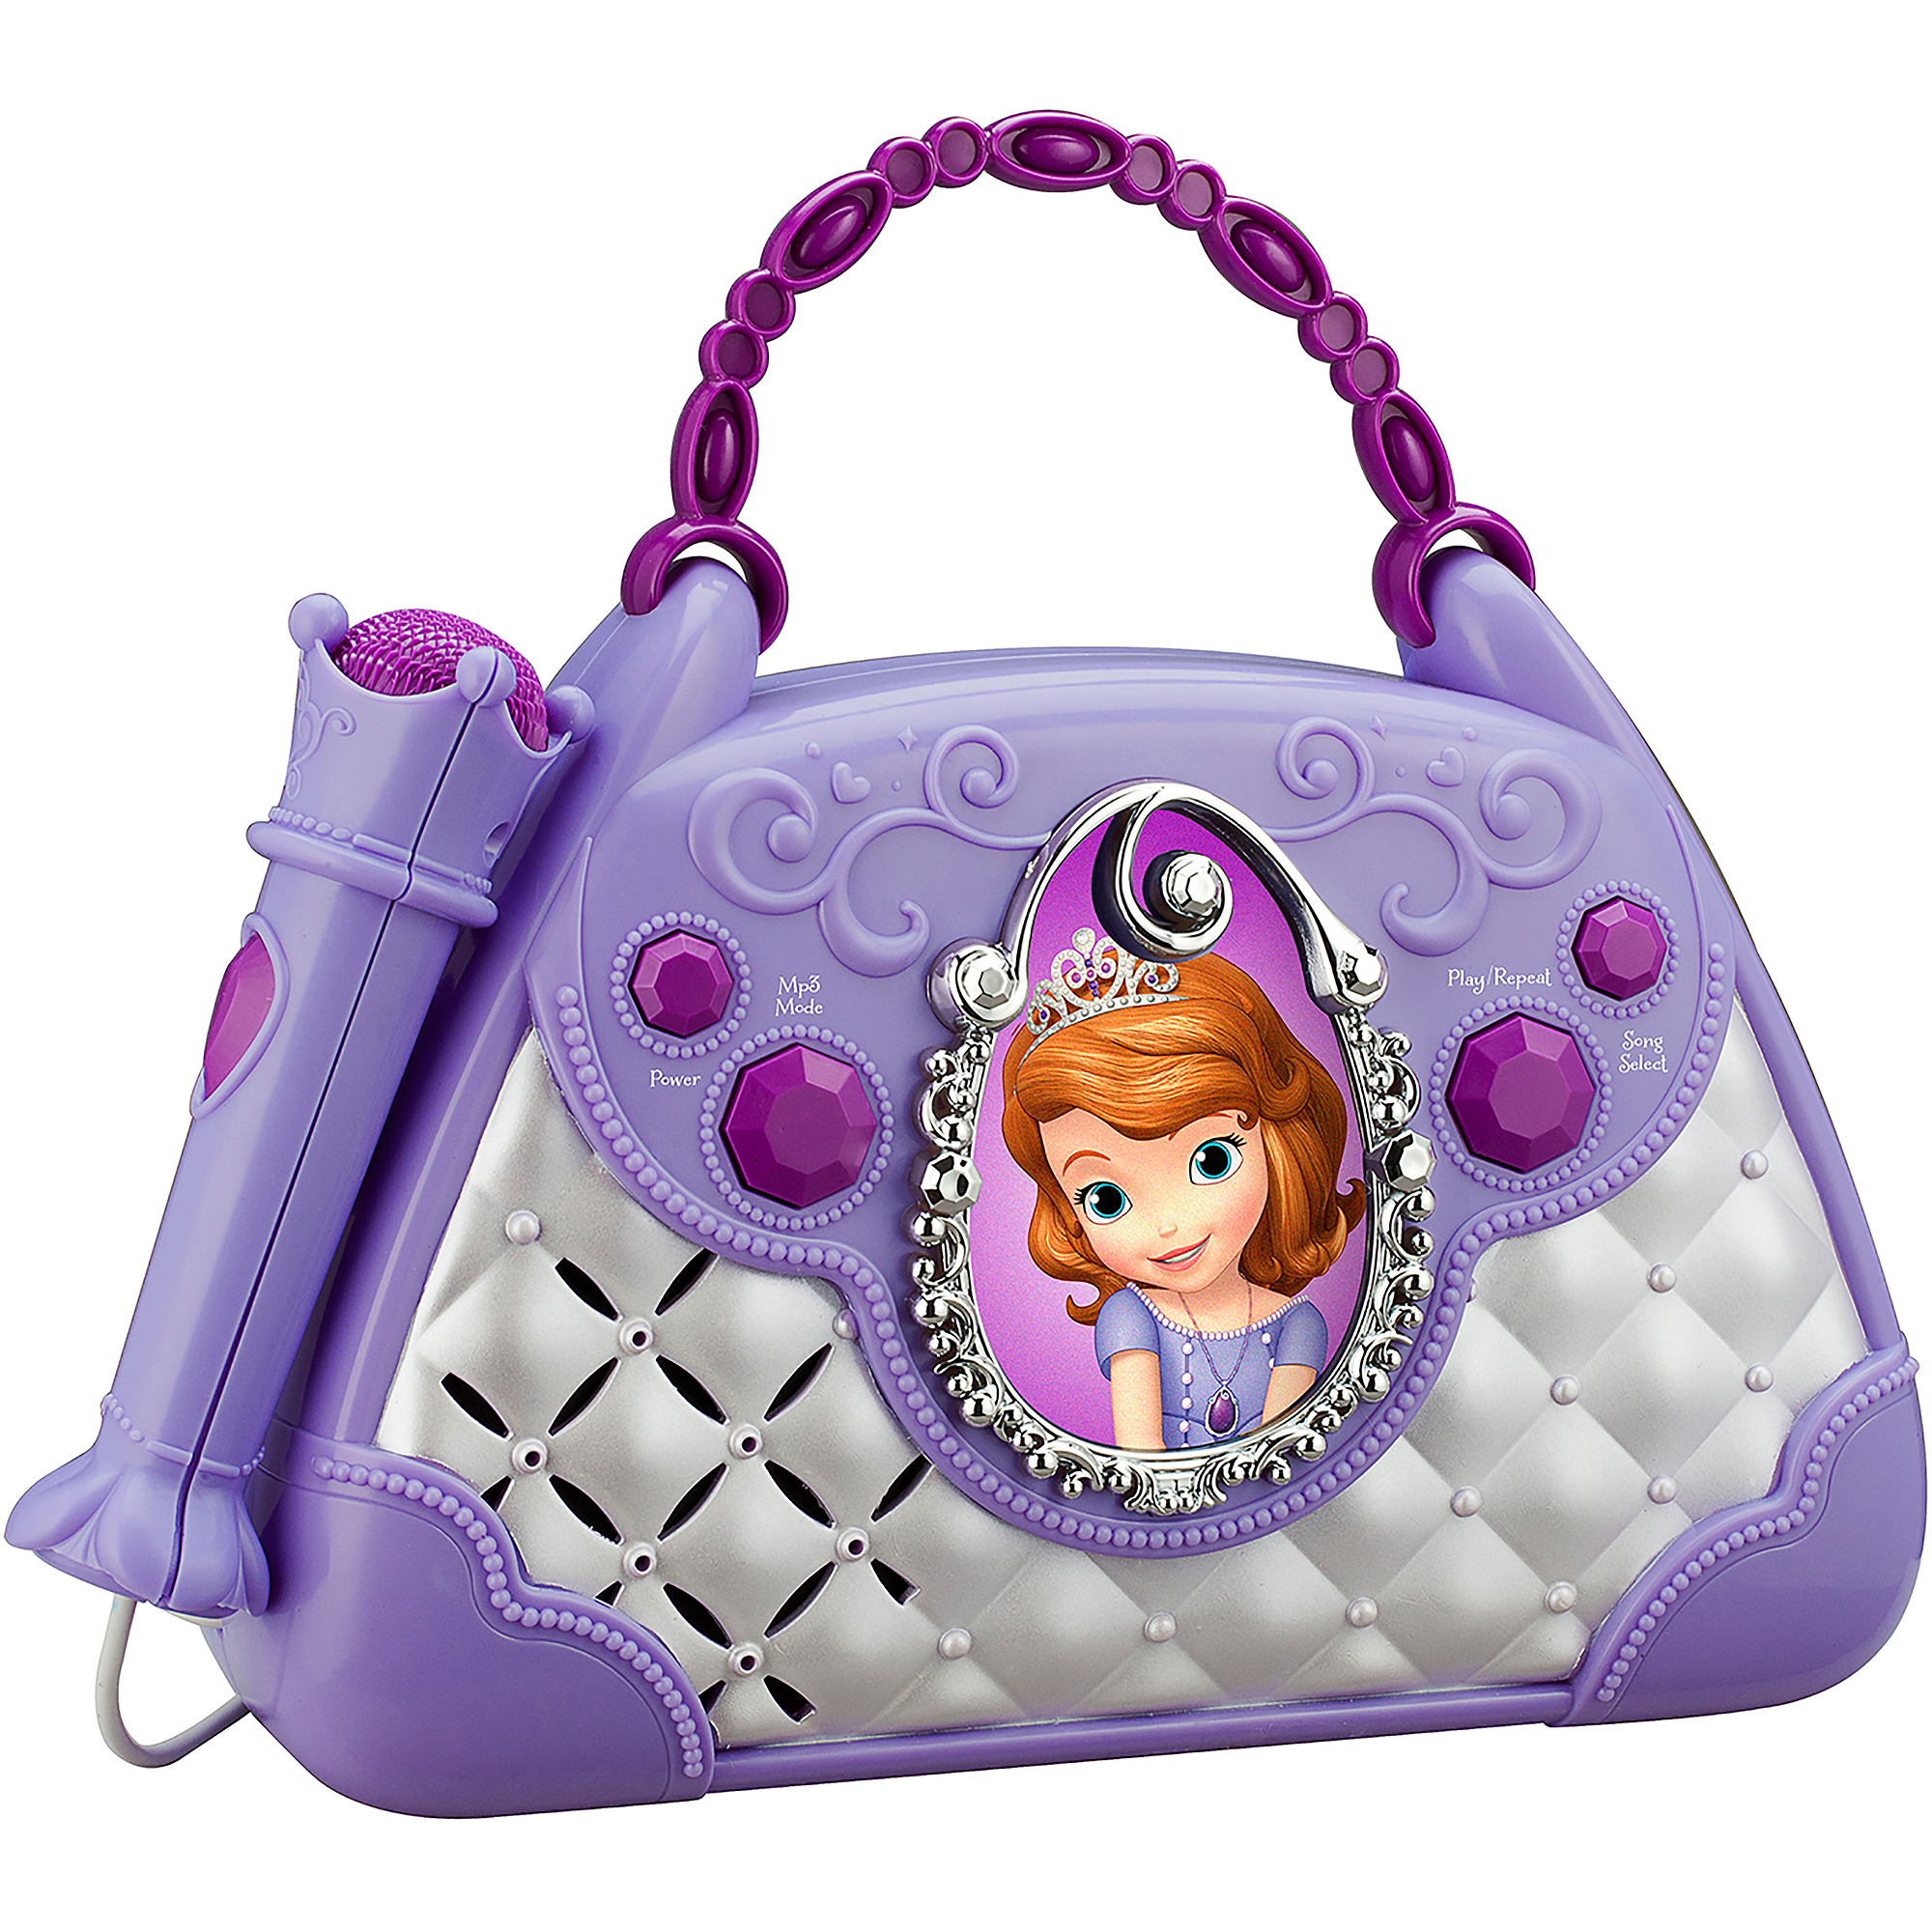 Disney Sofia the First Sing-Along Boombox